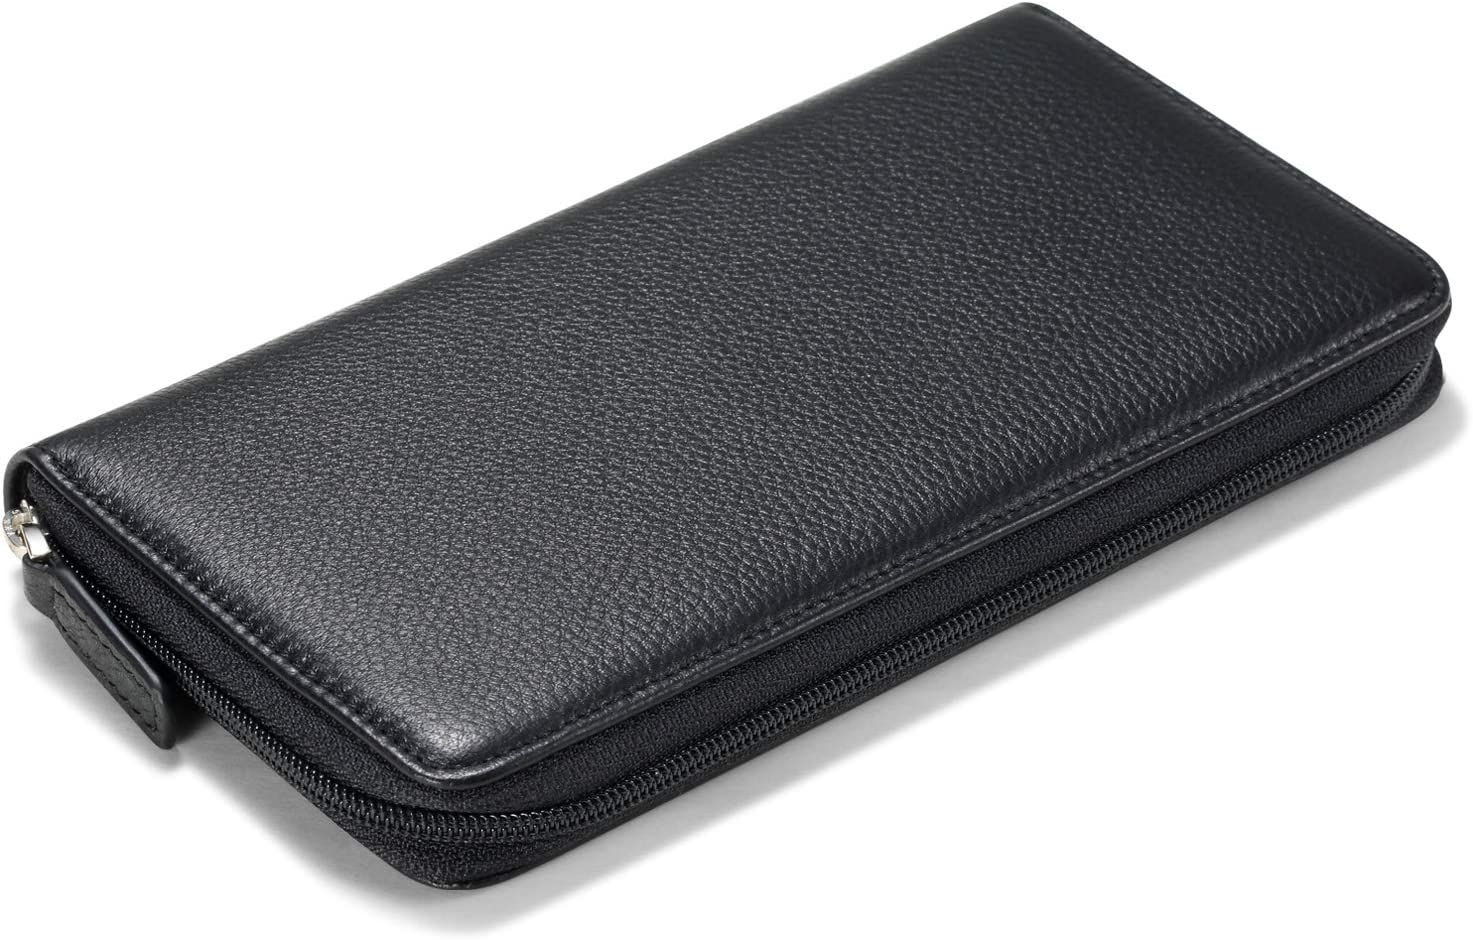 HISCOW Zippered Checkbook Cover /& Card Holder with Divider Wine Red Italian Calfskin